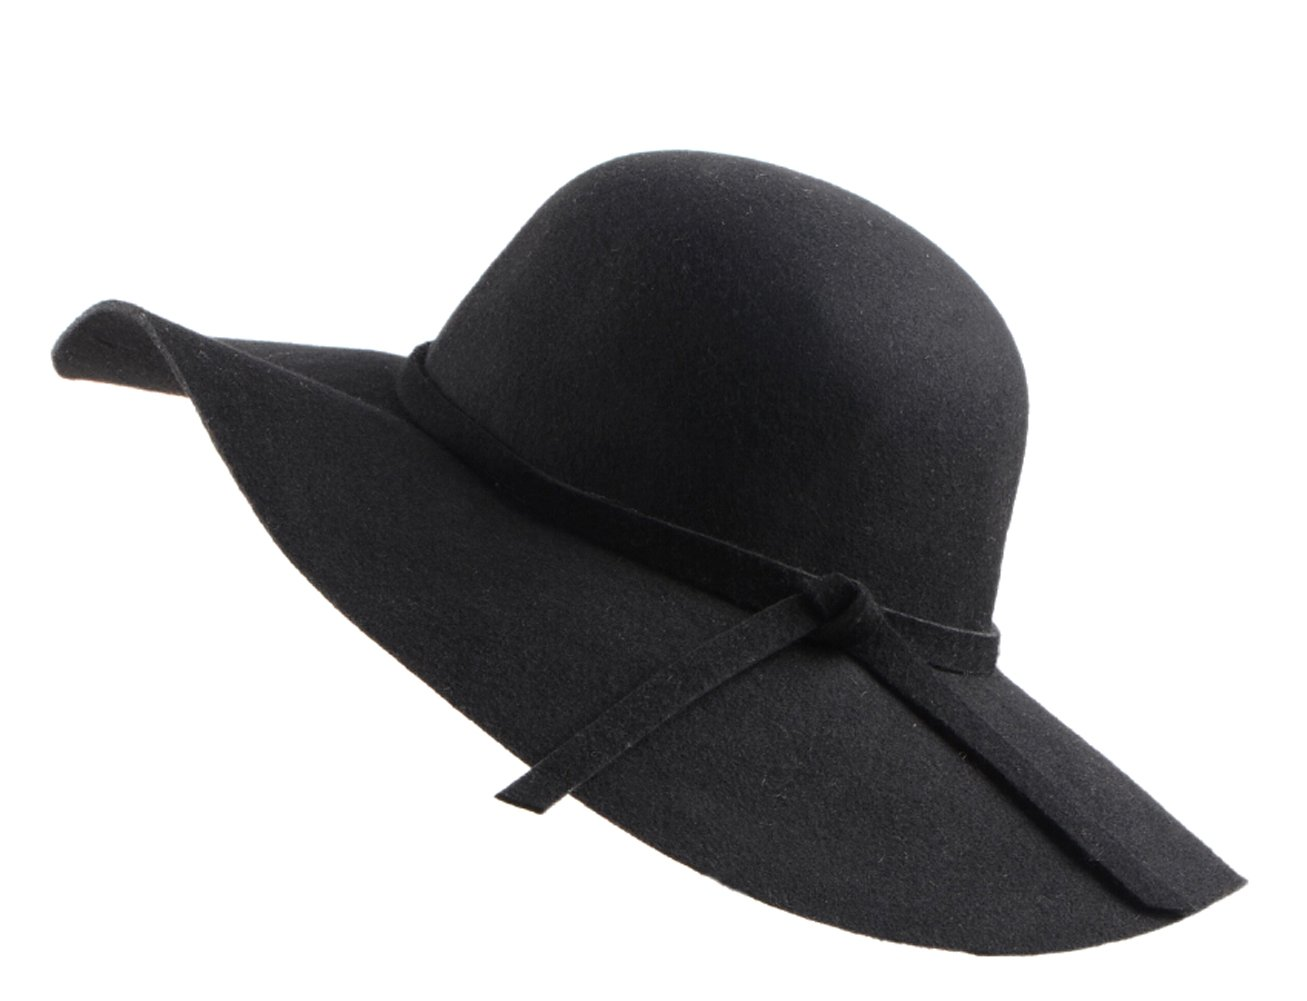 Urban CoCo Women's Foldable Wide Brim Felt Bowler Fedora Floopy Wool Hat (Black)